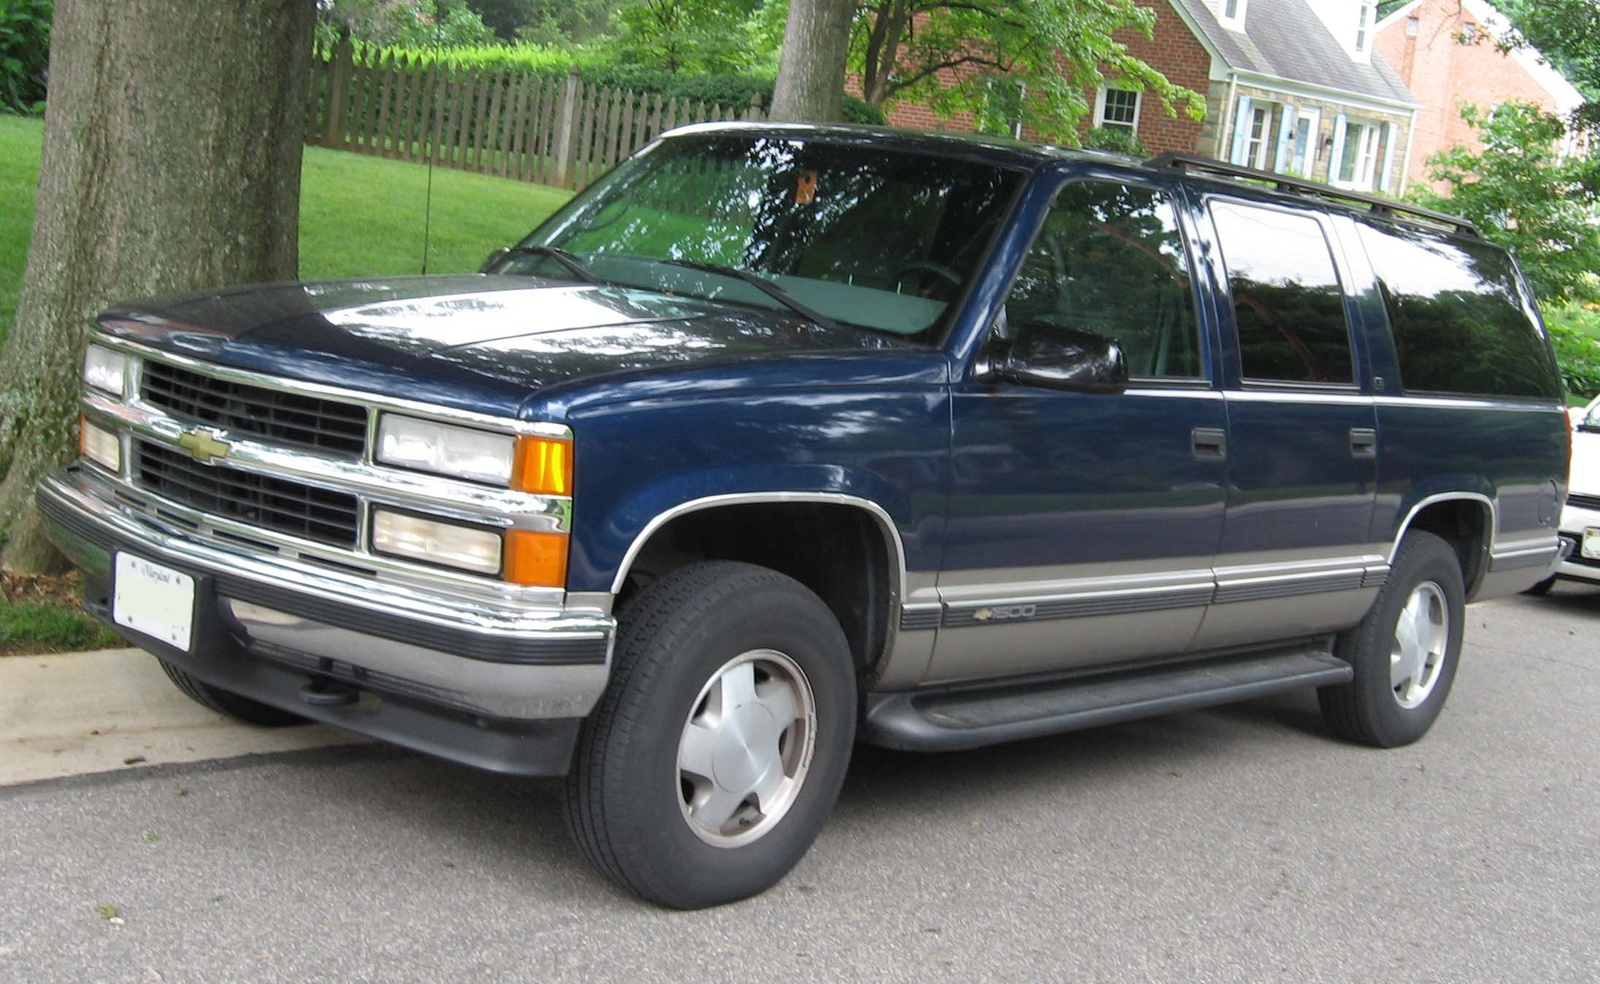 Wiring Diagram 1994 Suburban 2500 4x4 Library 2000 Chevy K1500 4wd Example Electrical Gas Mileage Chevrolet